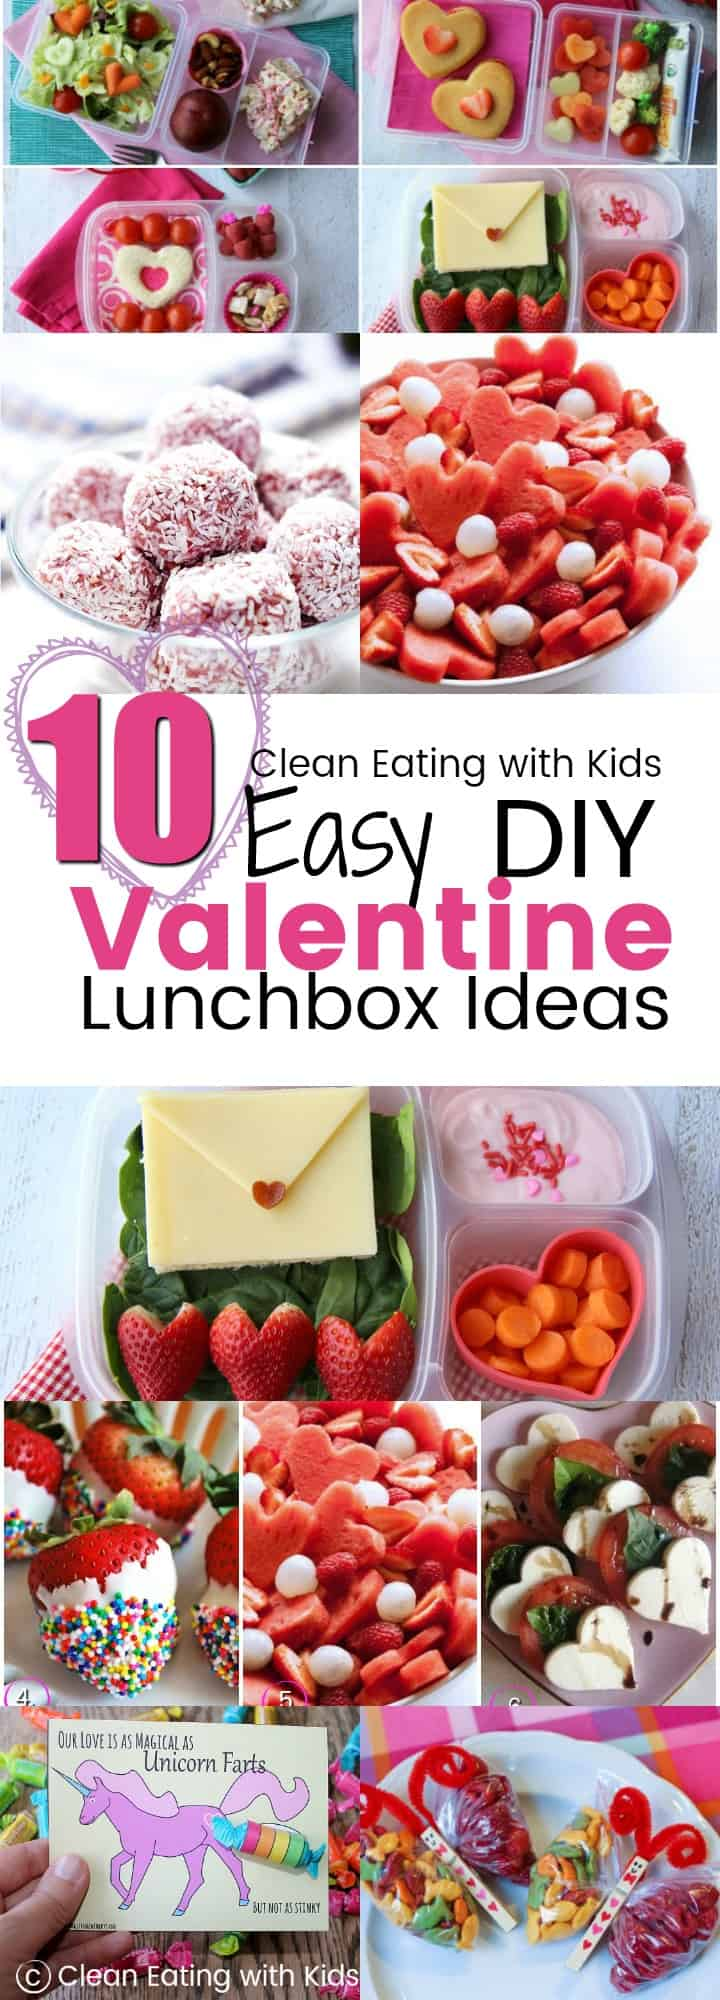 Thinking about trying some of these easy ideas for making Valentine's Day themed packed lunch box for the kids (and maybe husband?) #cleaneating #healthysnacks #Valentinesday